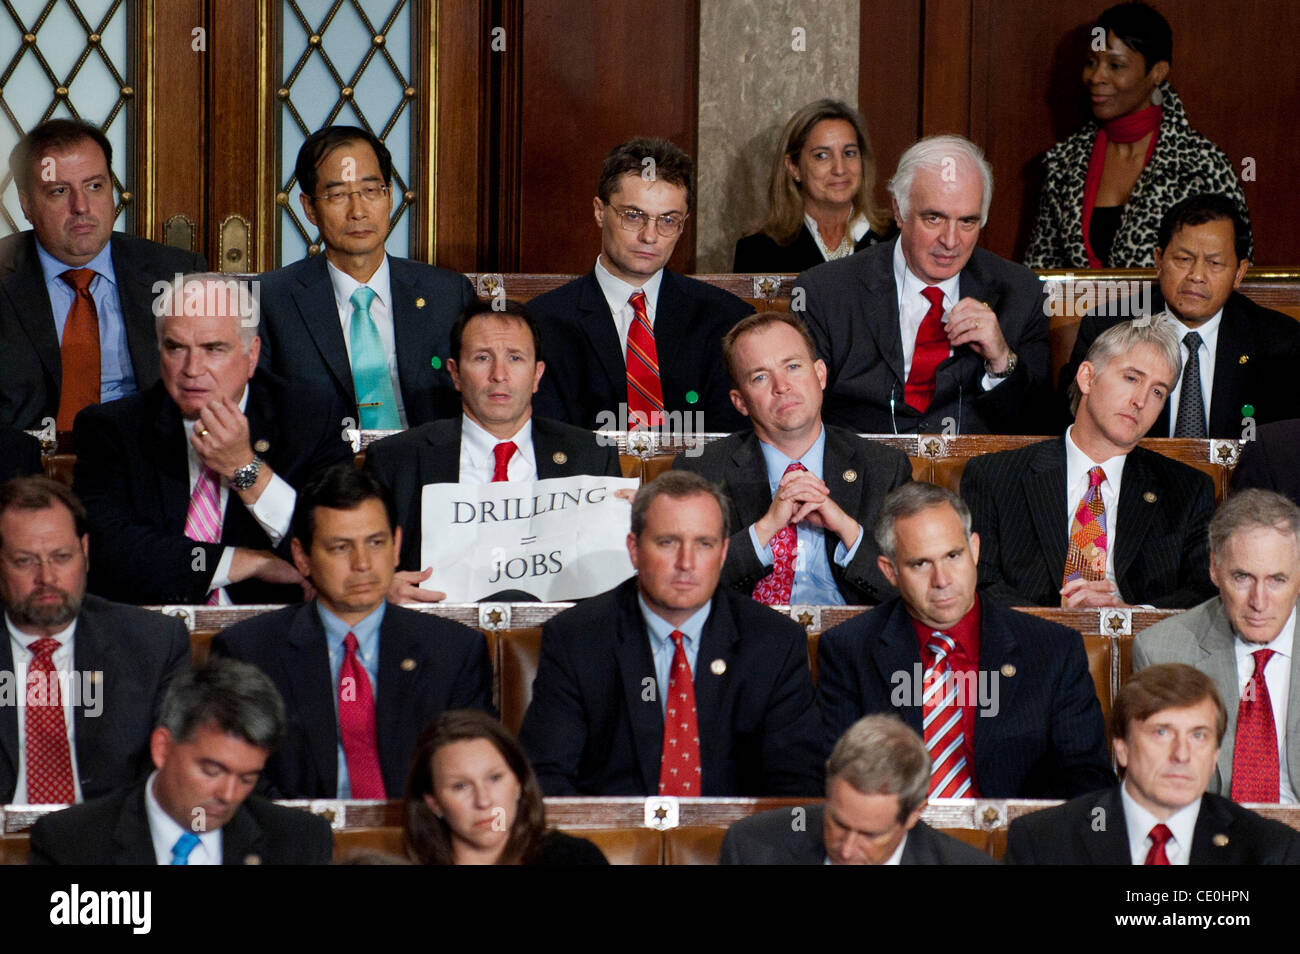 Sept. 8, 2011 - Washington, District of Columbia, U.S. - Rep. JEFF LANDRY (R-LA) holds up a sign saying drilling Stock Photo